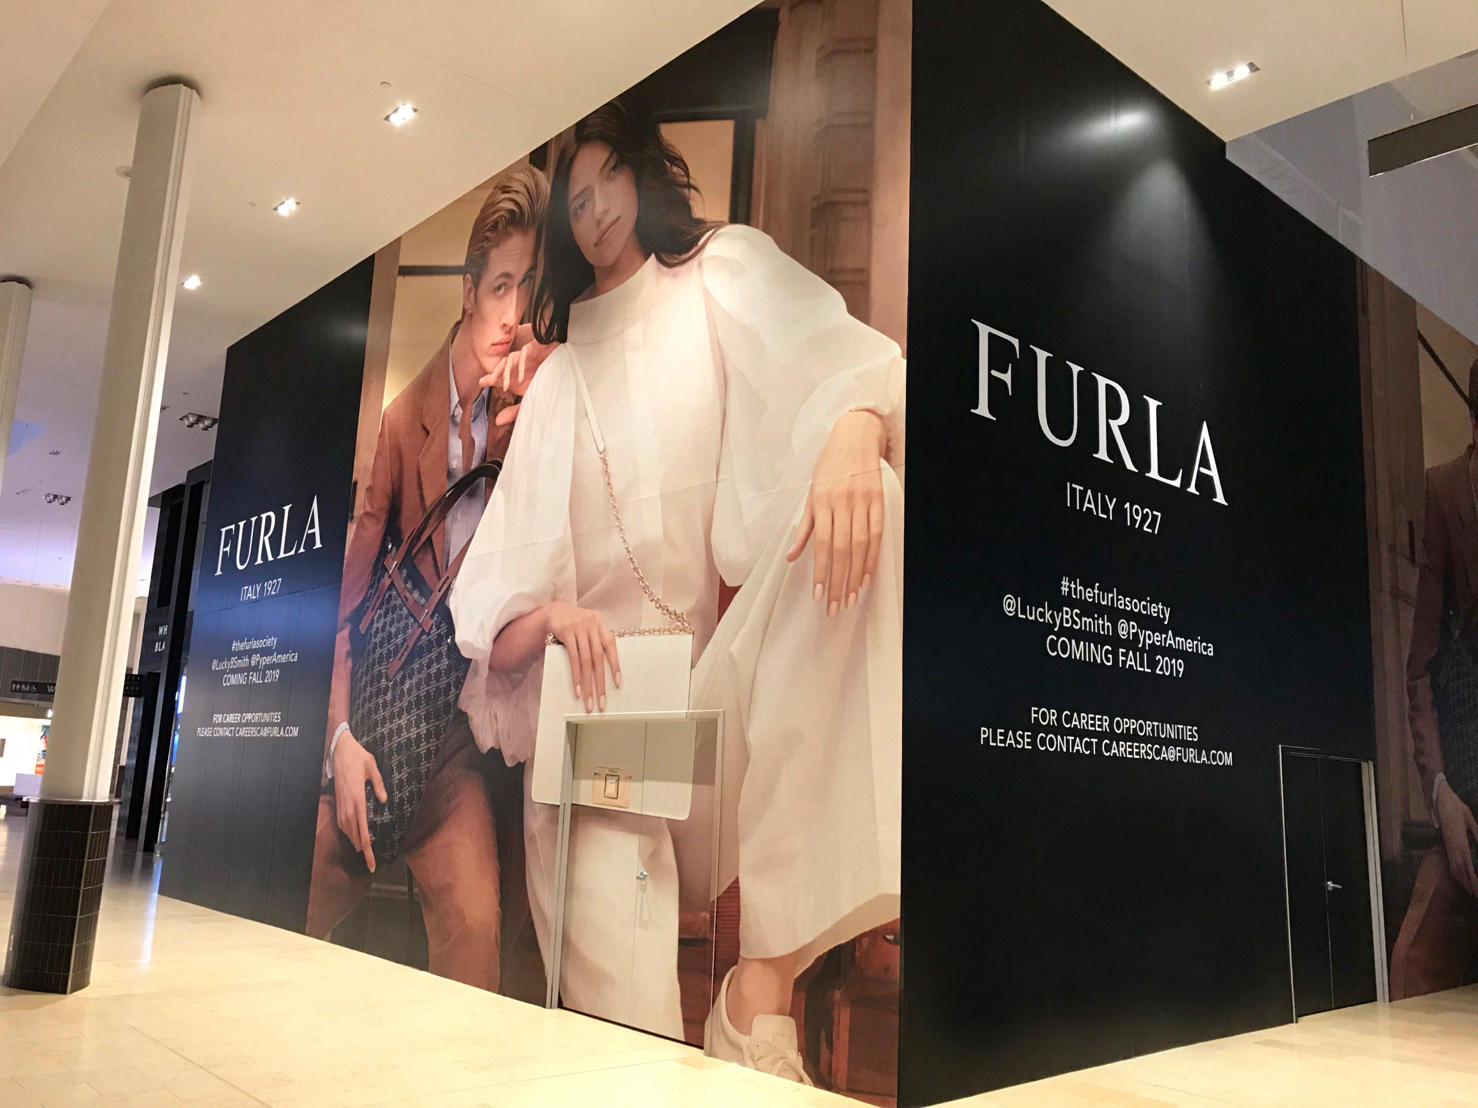 CONSTRUCTION HOARDING AT FURLA'S NEW YORKDALE LOCATION. Photo: Jeff Berkowitz